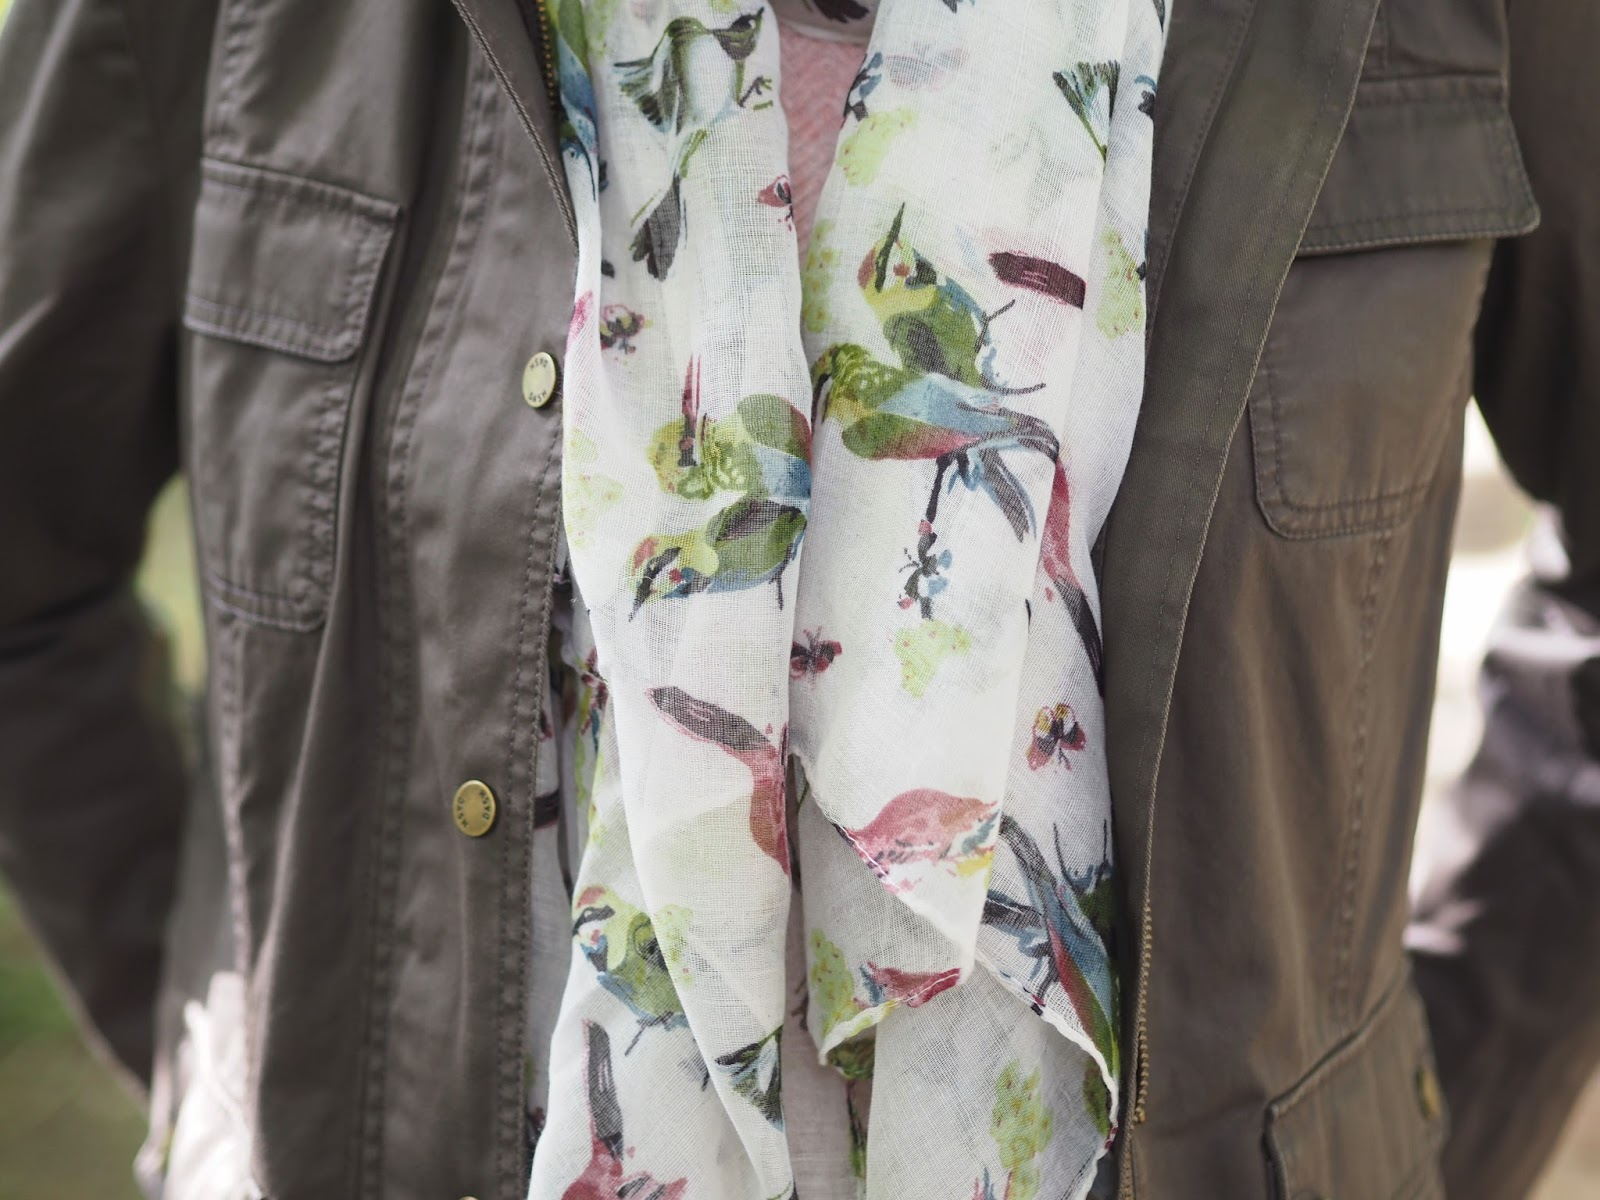 Dash khaki waxed jacket, pink jumper, skinny jeans, brogue style Chelsea boots and birds of paradise scarf, country style